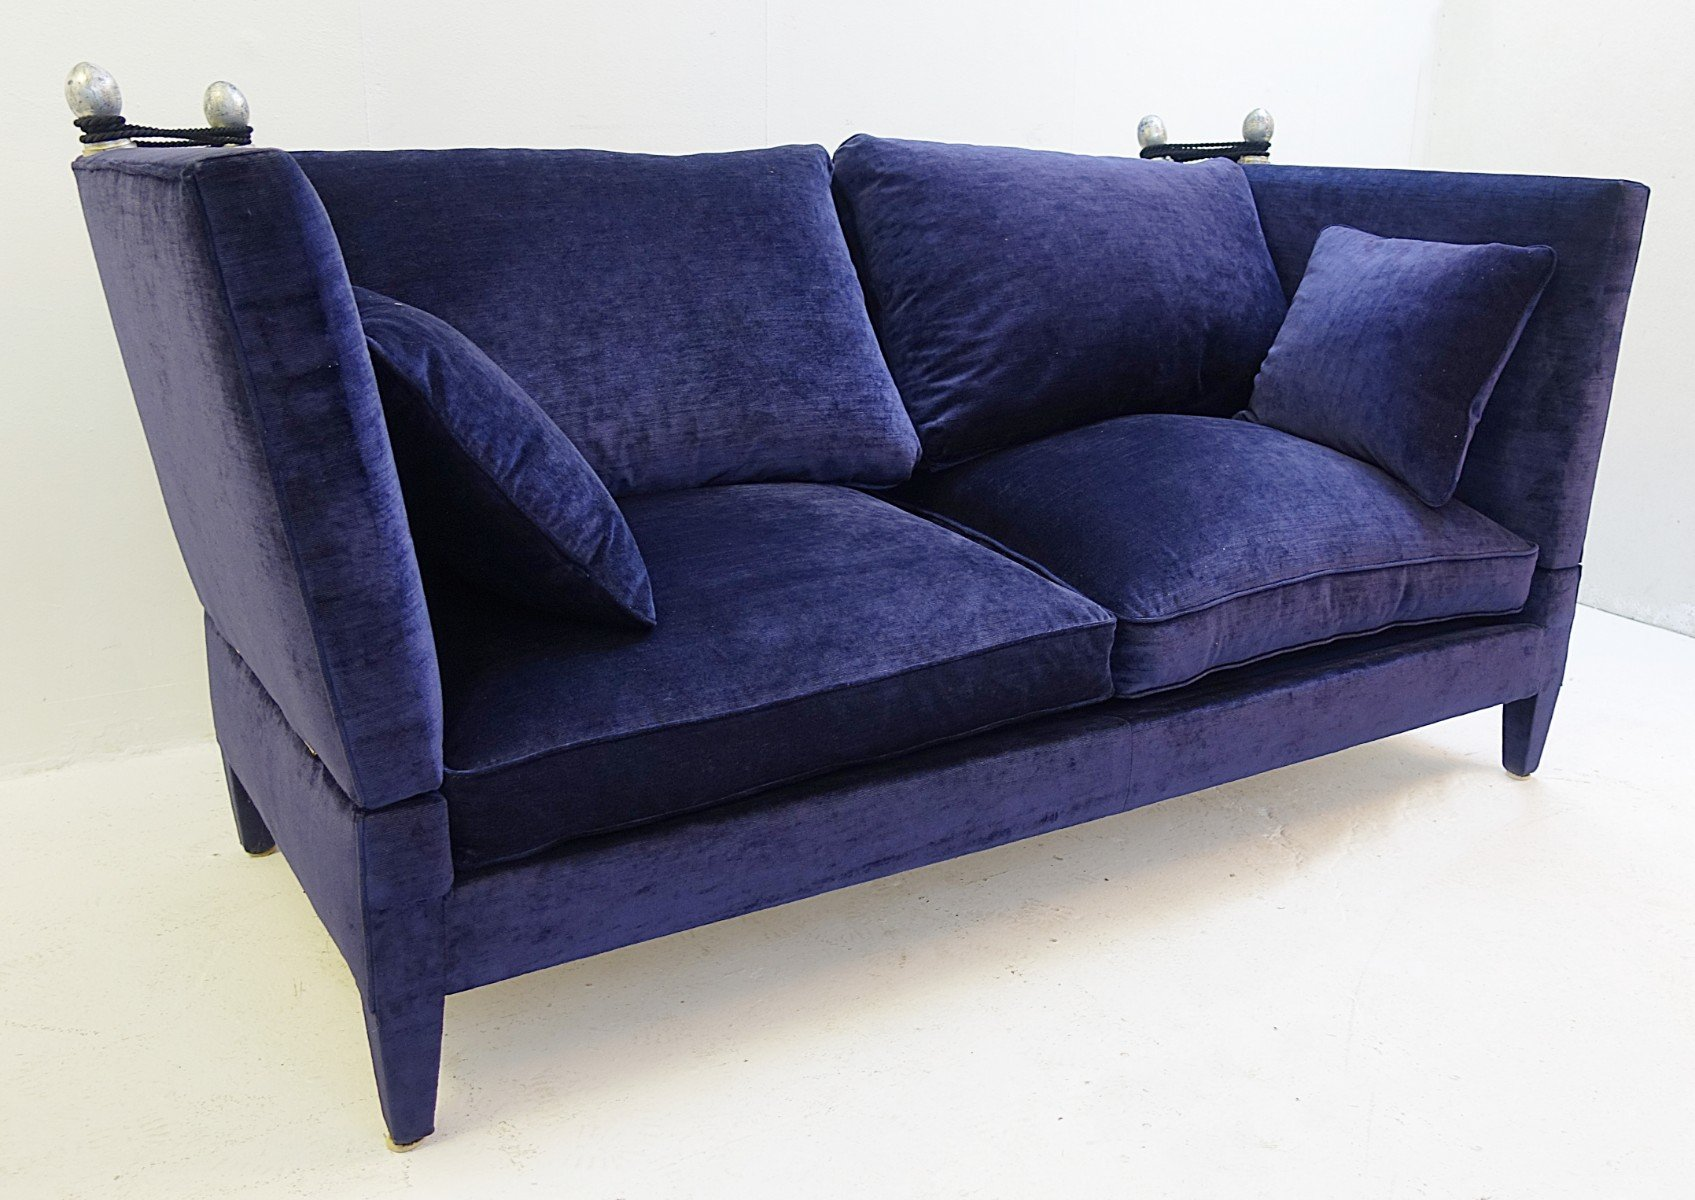 Midnight Navy Blue Velvet Sofa, 1960s | #96714